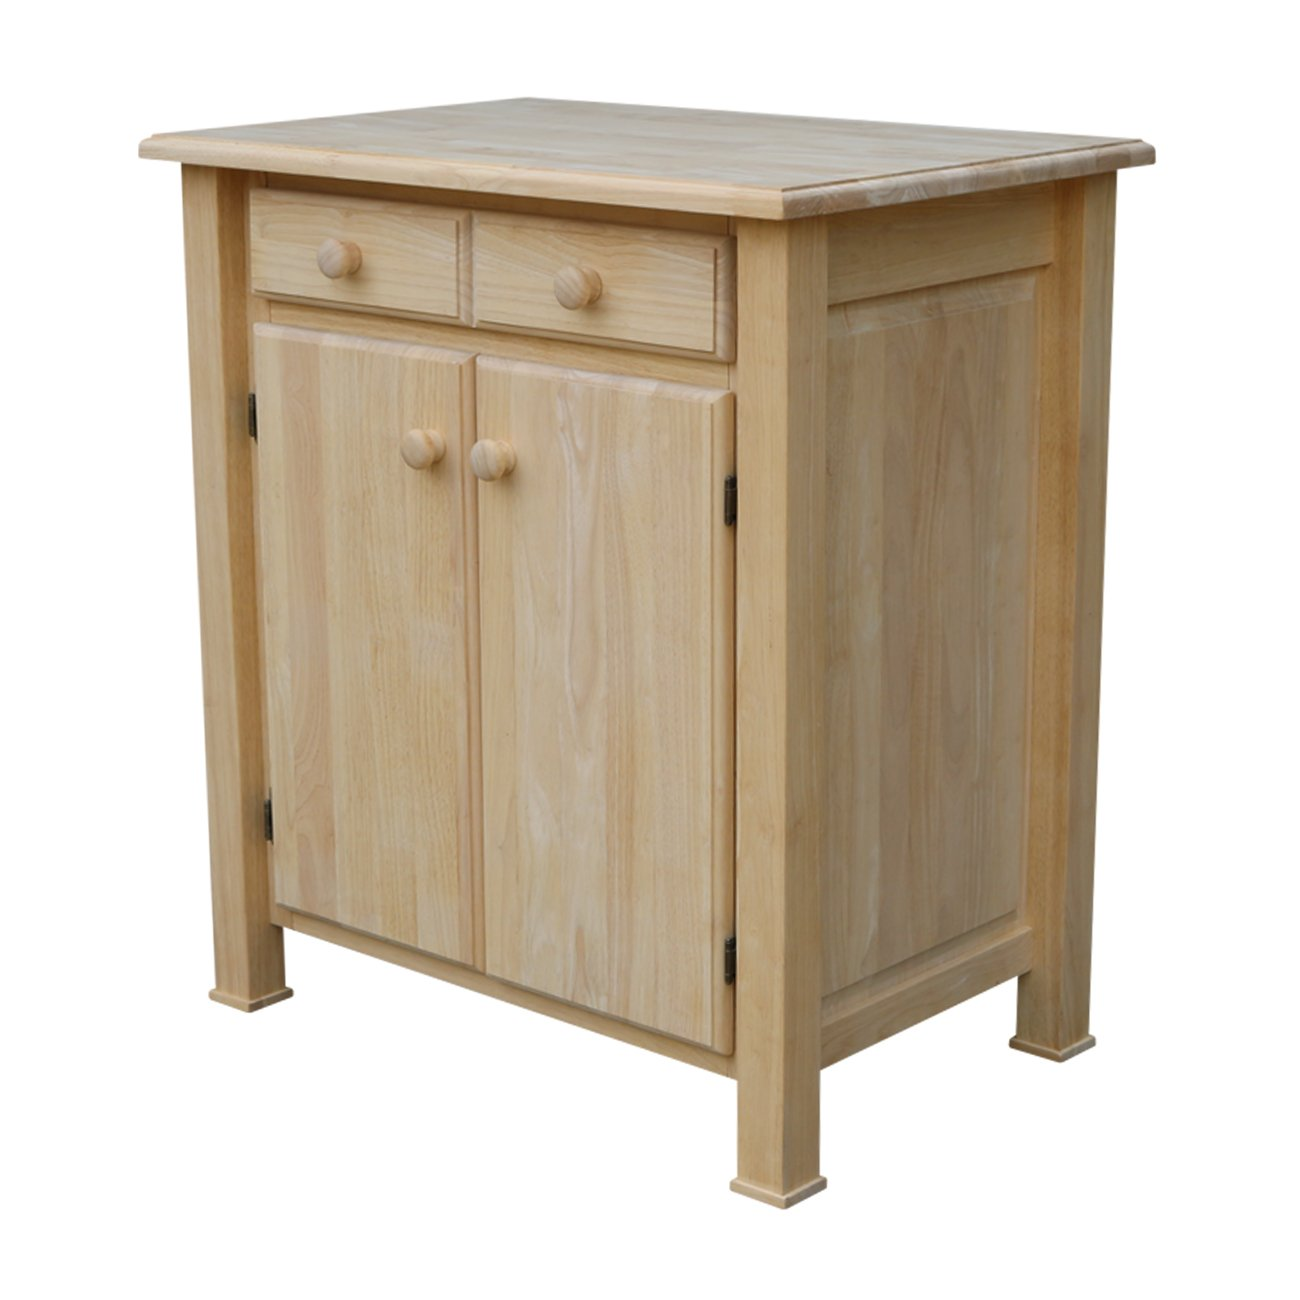 target and unfinished cabinets real mirimyn media martin dark metal furniture solid ashley white small whalen wood cabinet chests furnishings shane bayside accent table full size